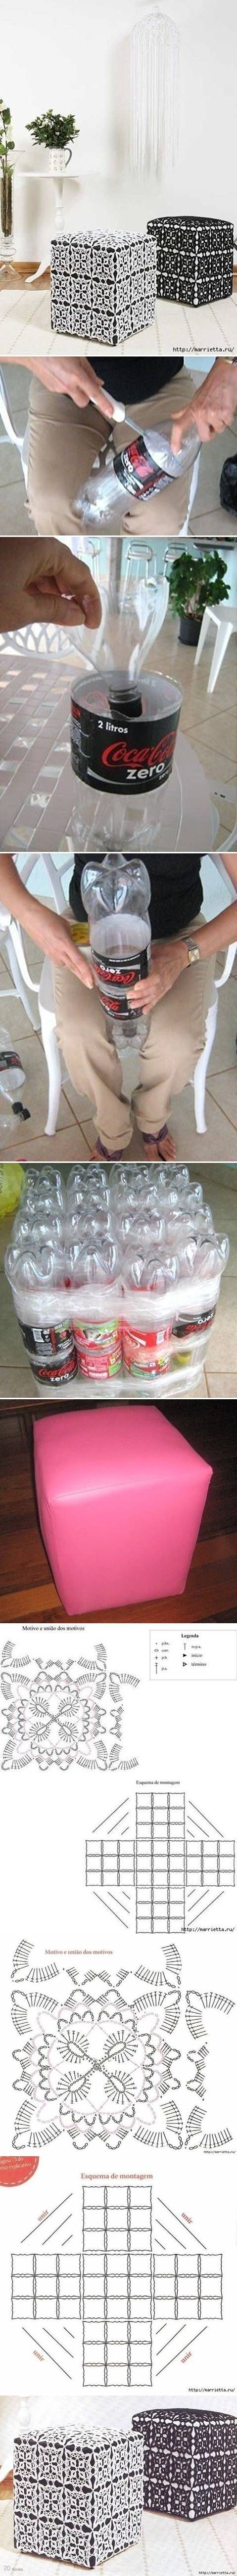 DIY Ottoman Out Of Plastic Bottles Pictures, Photos, and Images for Facebook, Tumblr, Pinterest, and Twitter